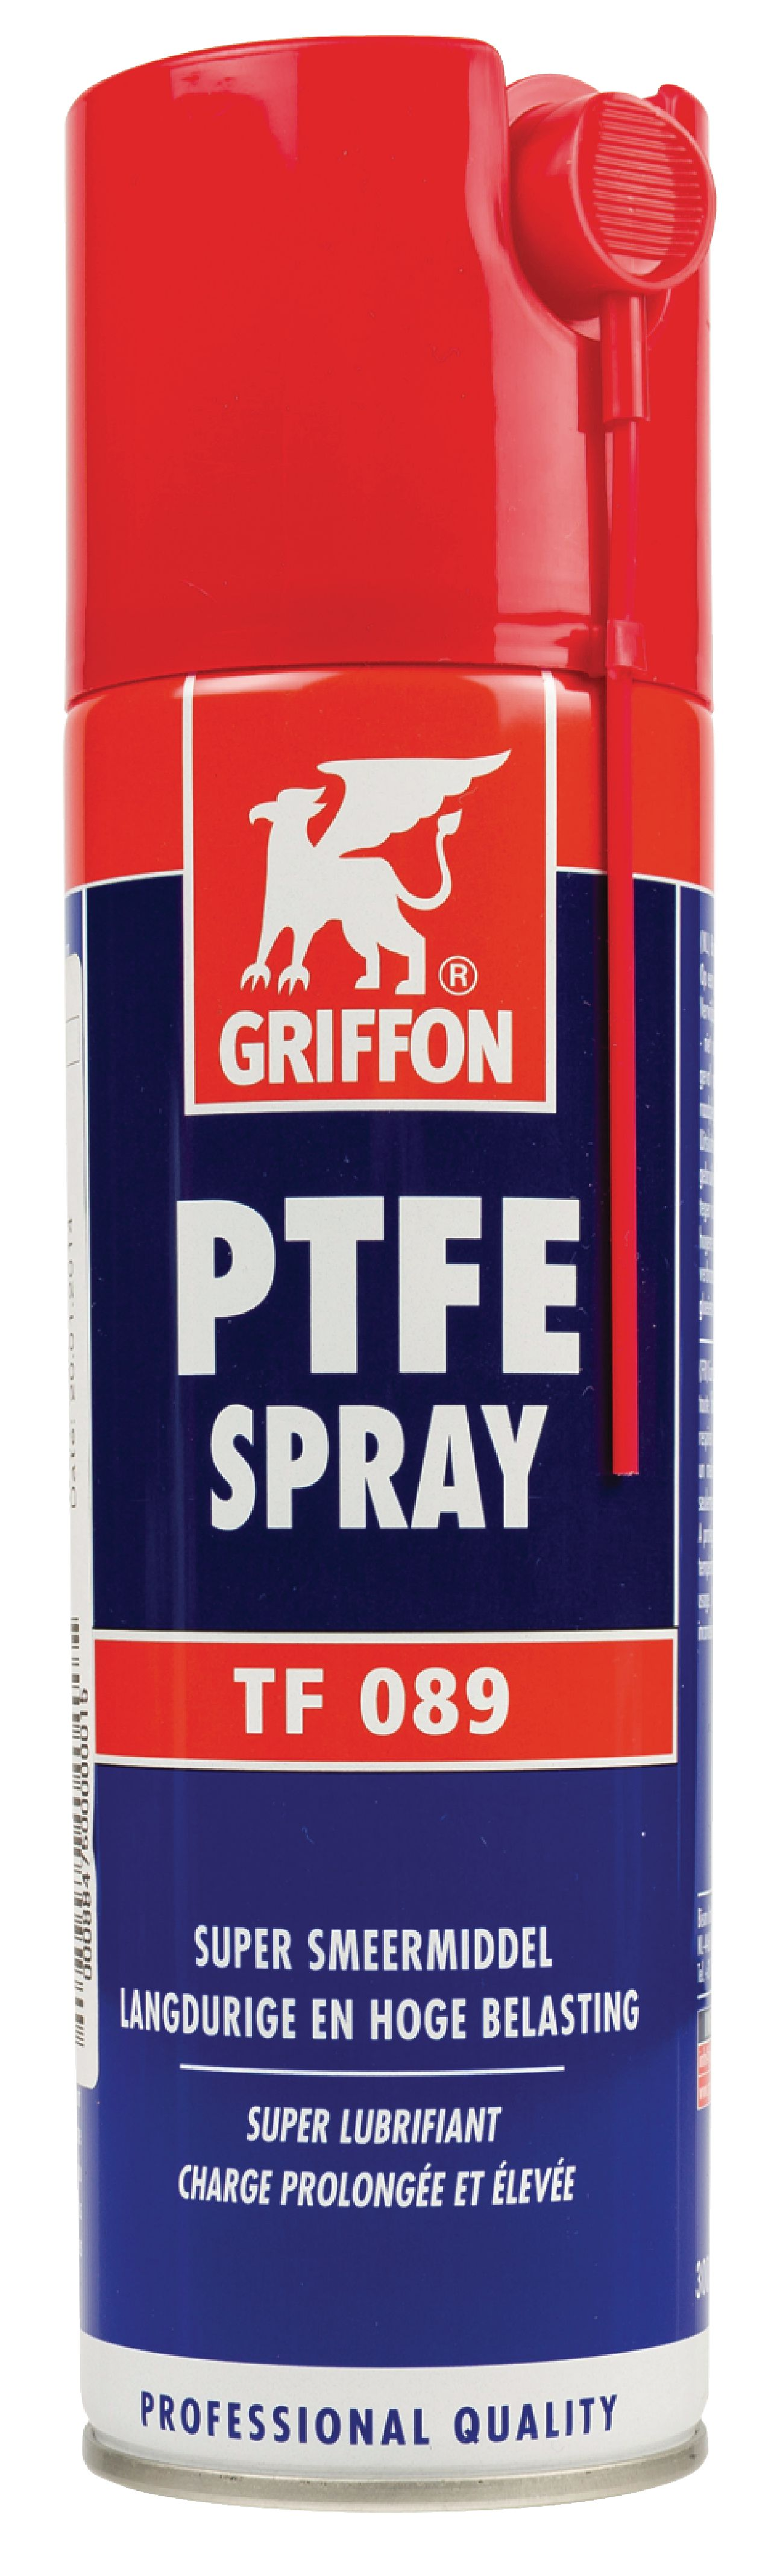 Teflon Spray Pe-teflon - Griffon - Ptfe Spray Universal 300 Ml